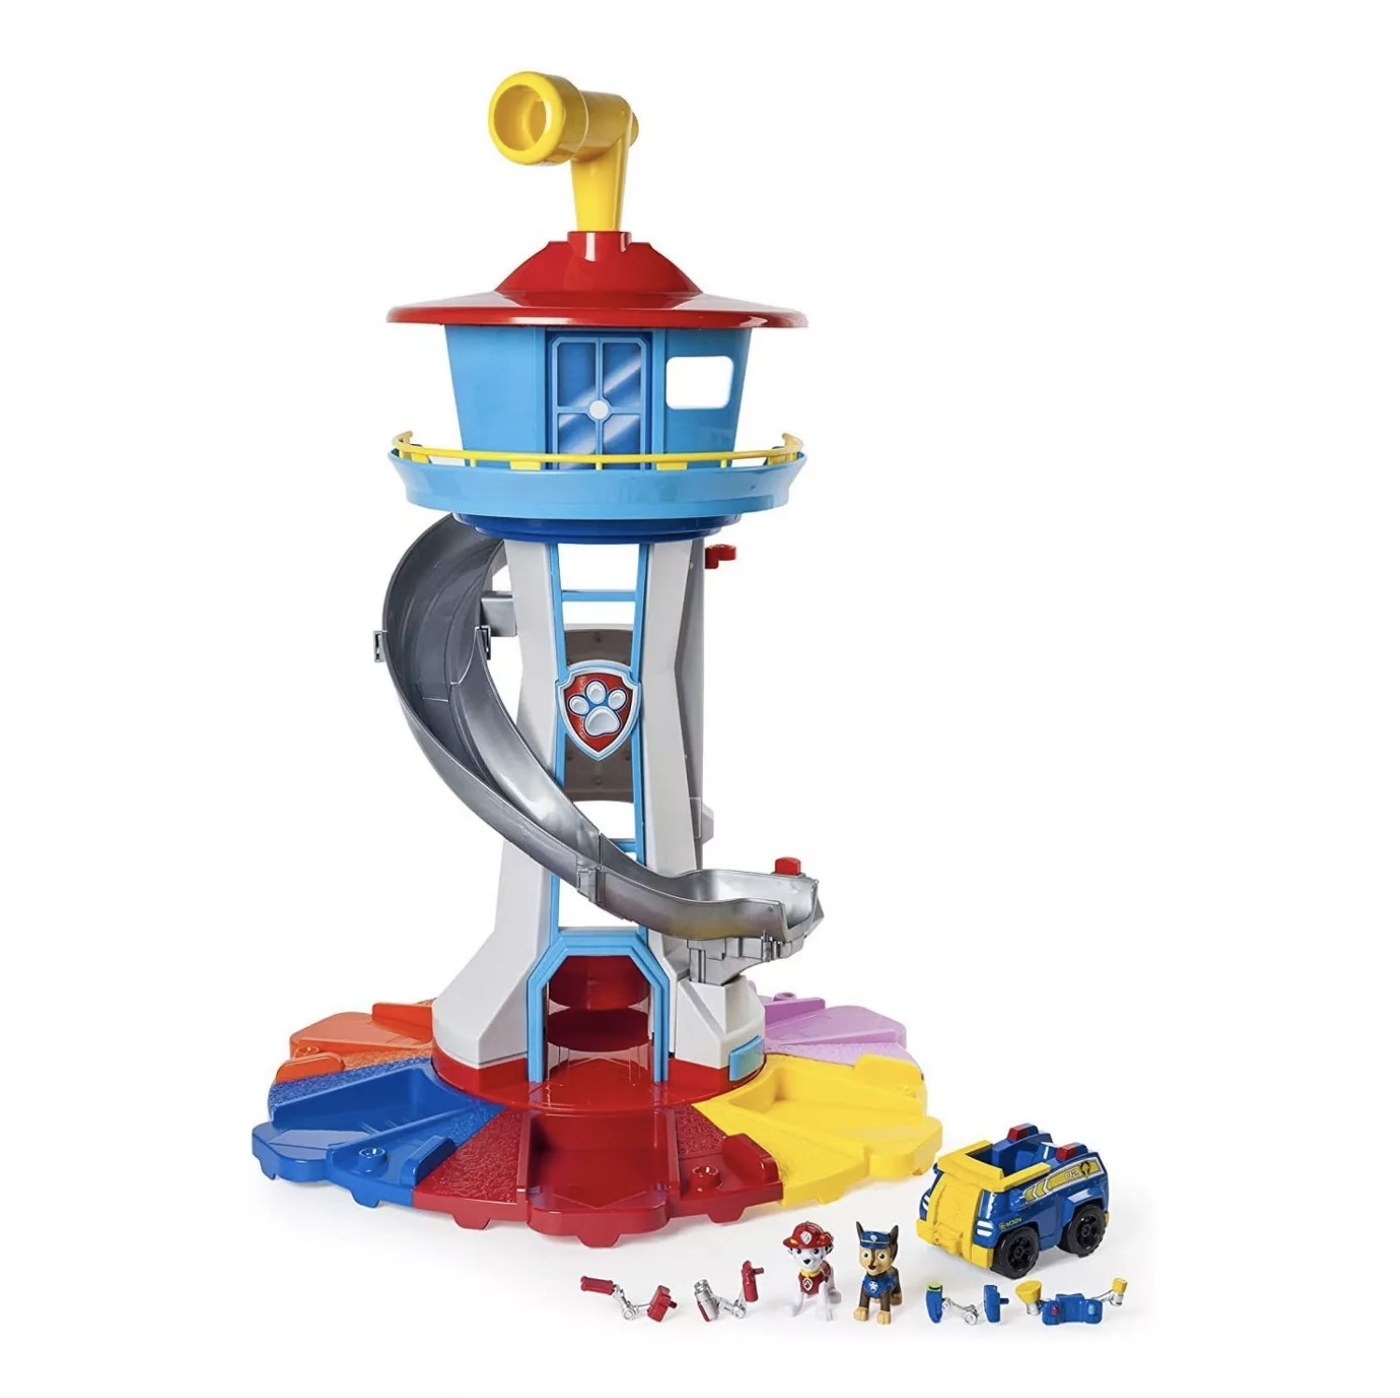 The Paw Patrol lookout tower